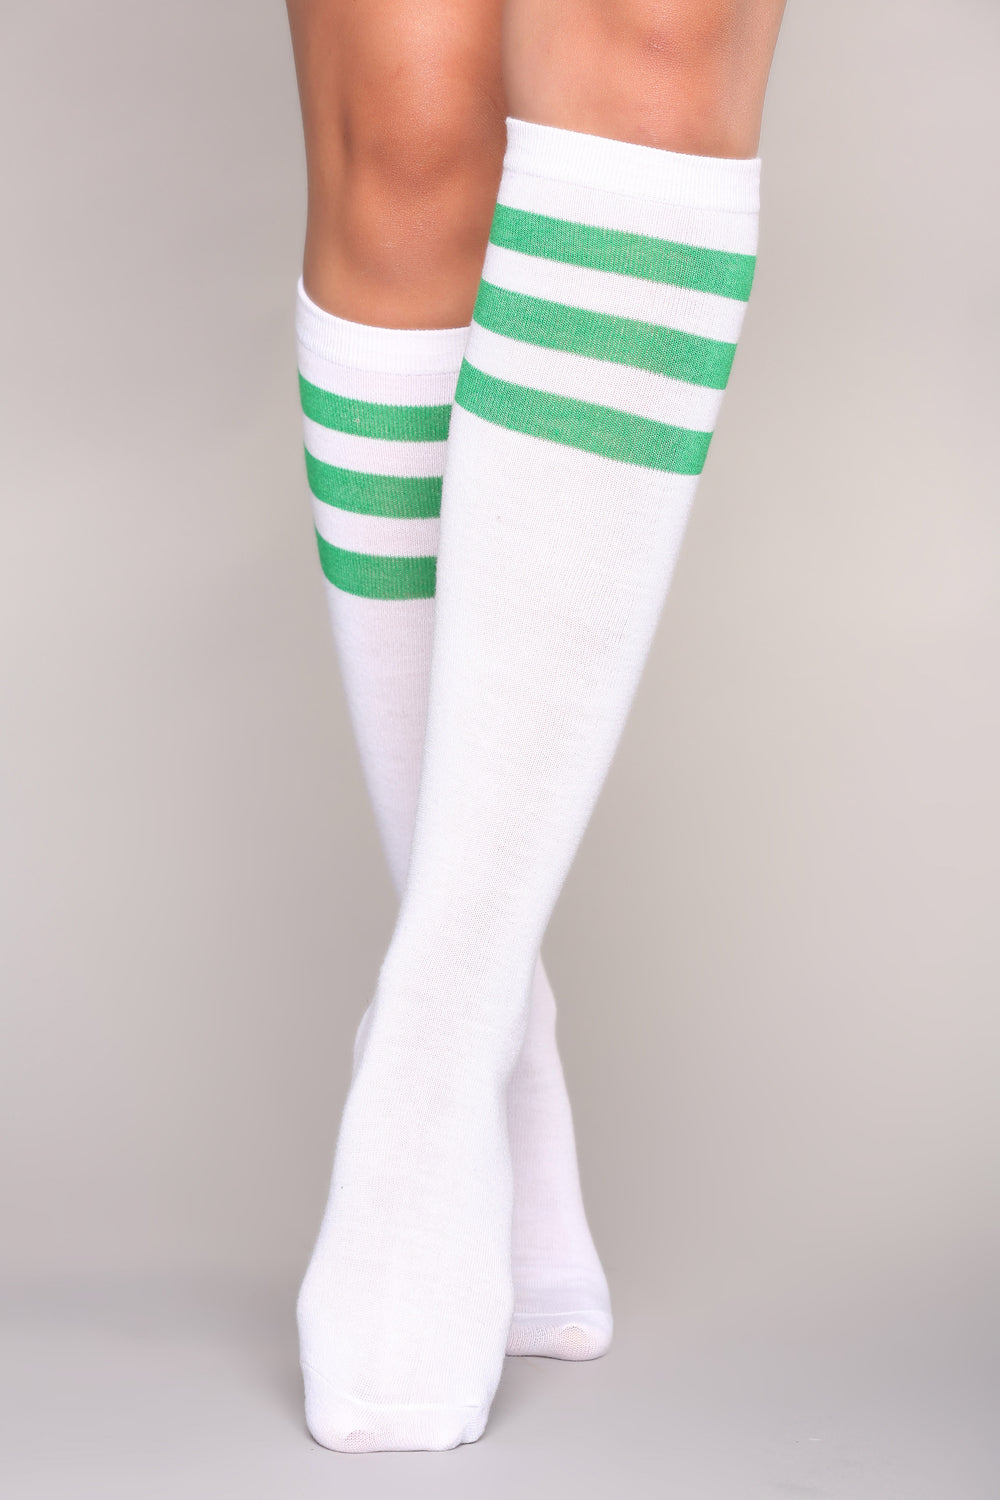 Not Your Average Knee High Socks - Green